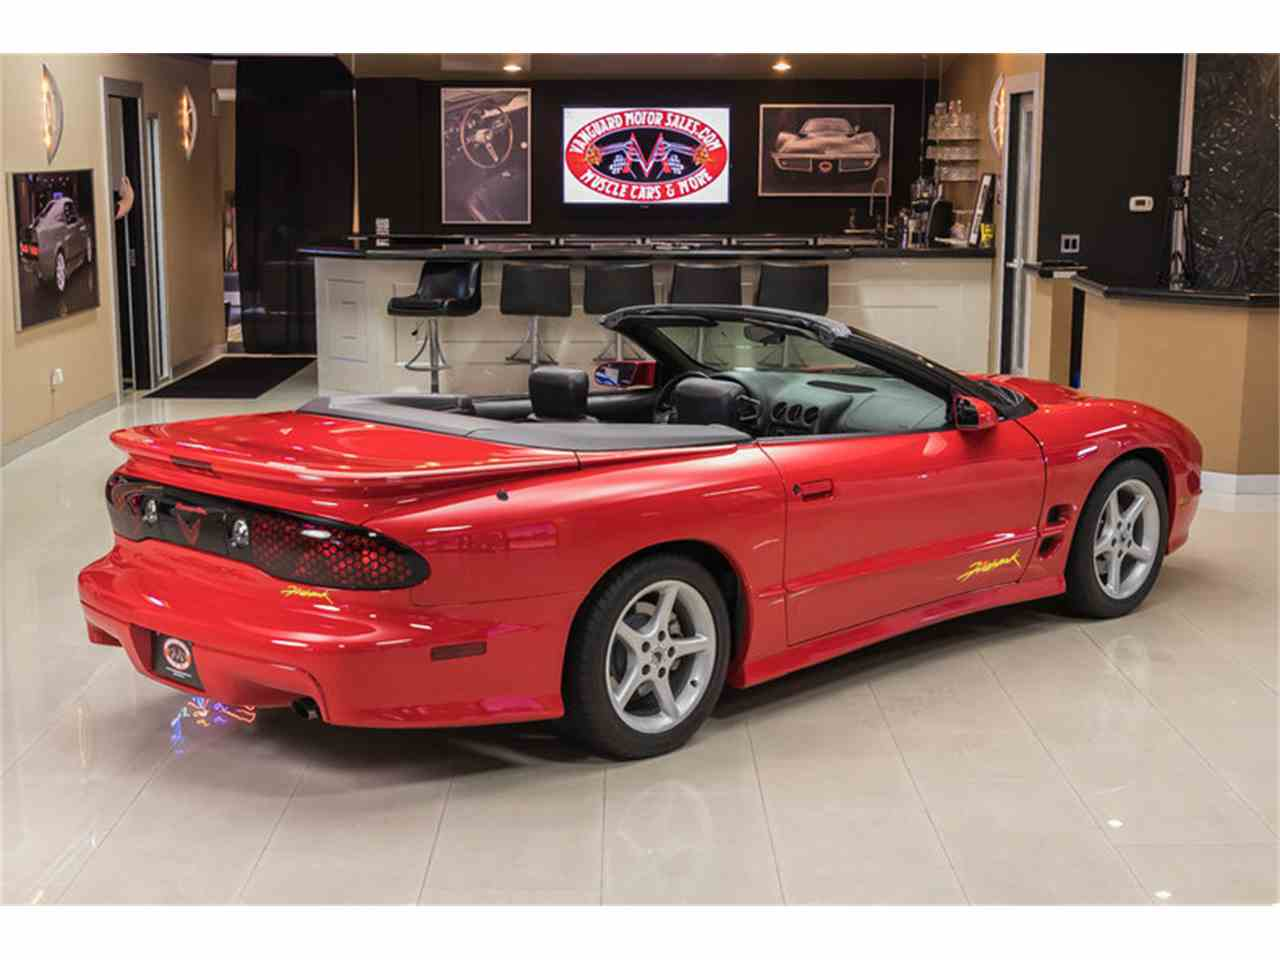 2002 pontiac firebird trans am firehawk convertible for sale cc 991025. Black Bedroom Furniture Sets. Home Design Ideas